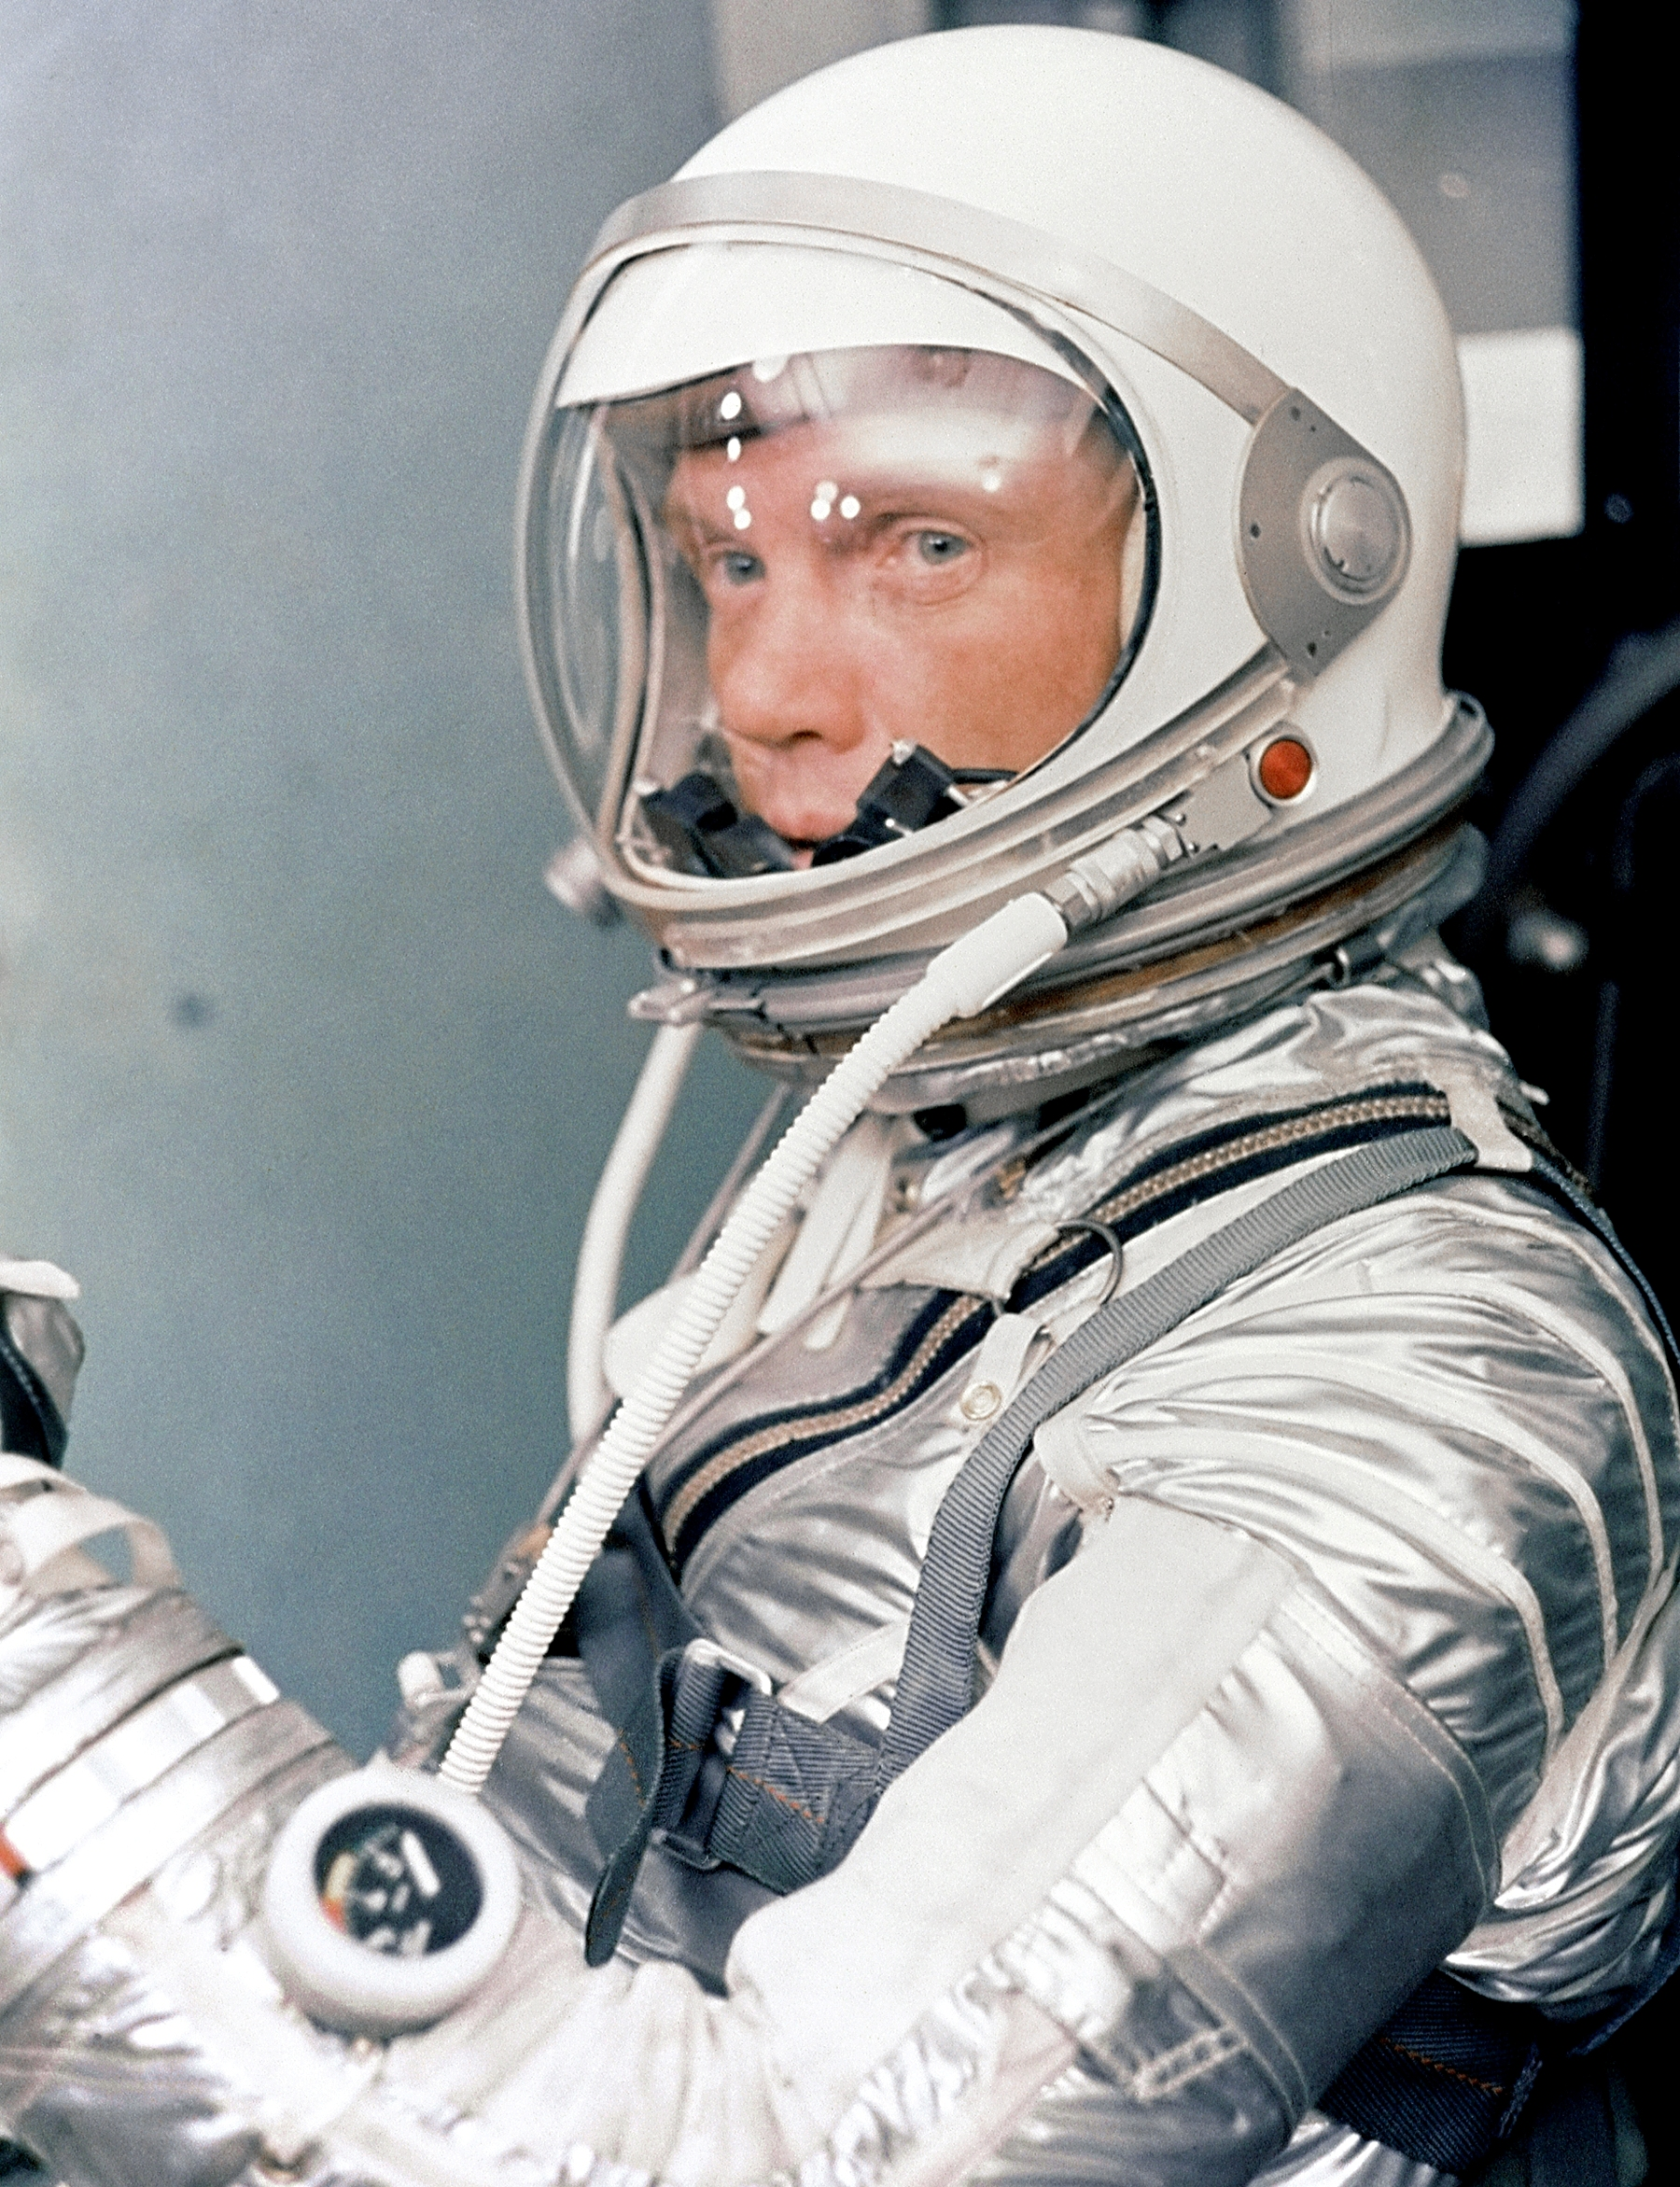 Astronaut John H. Glenn Jr. dons his silver Mercury pressure suit in preparation for launch of Mercury Atlas 6 (MA-6) rocket. Photo taken on January 20, 1962.